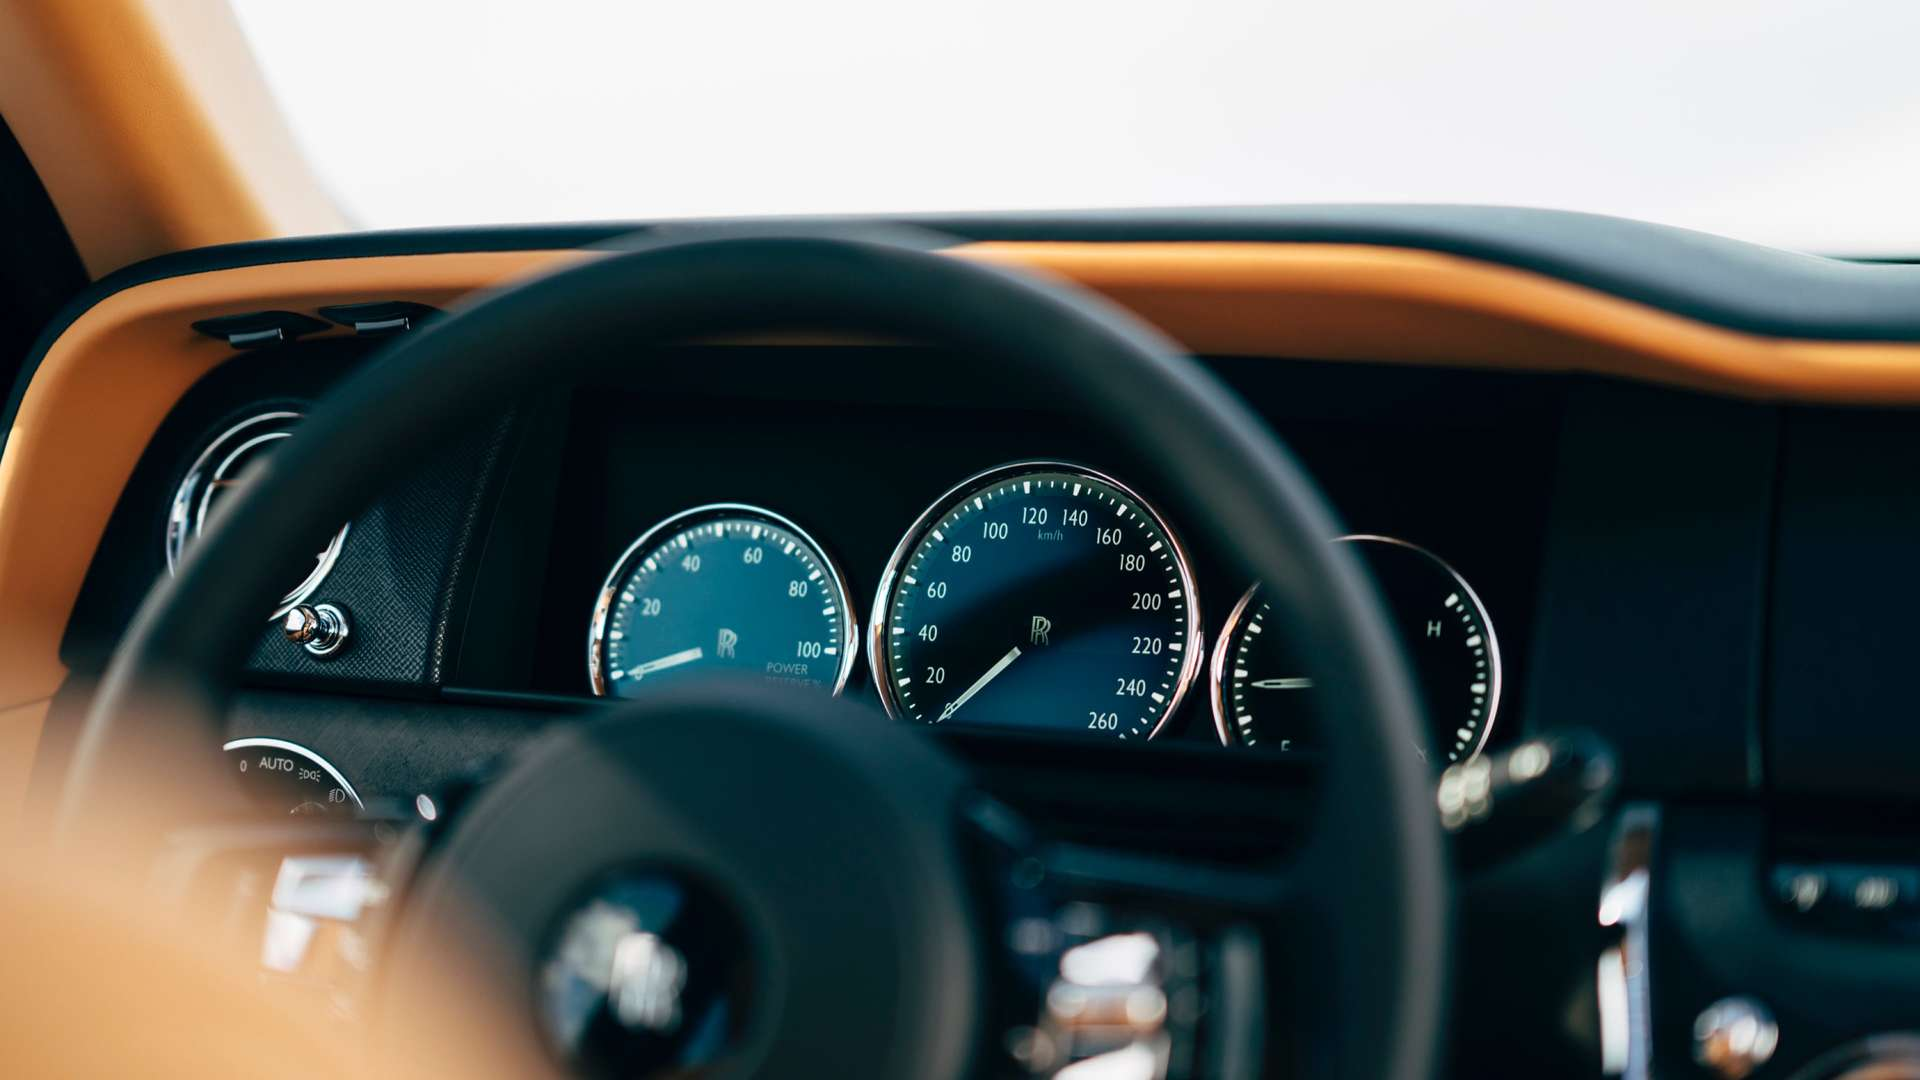 The digital dials of and steering wheel of the Rolls-Royce Cullinan.